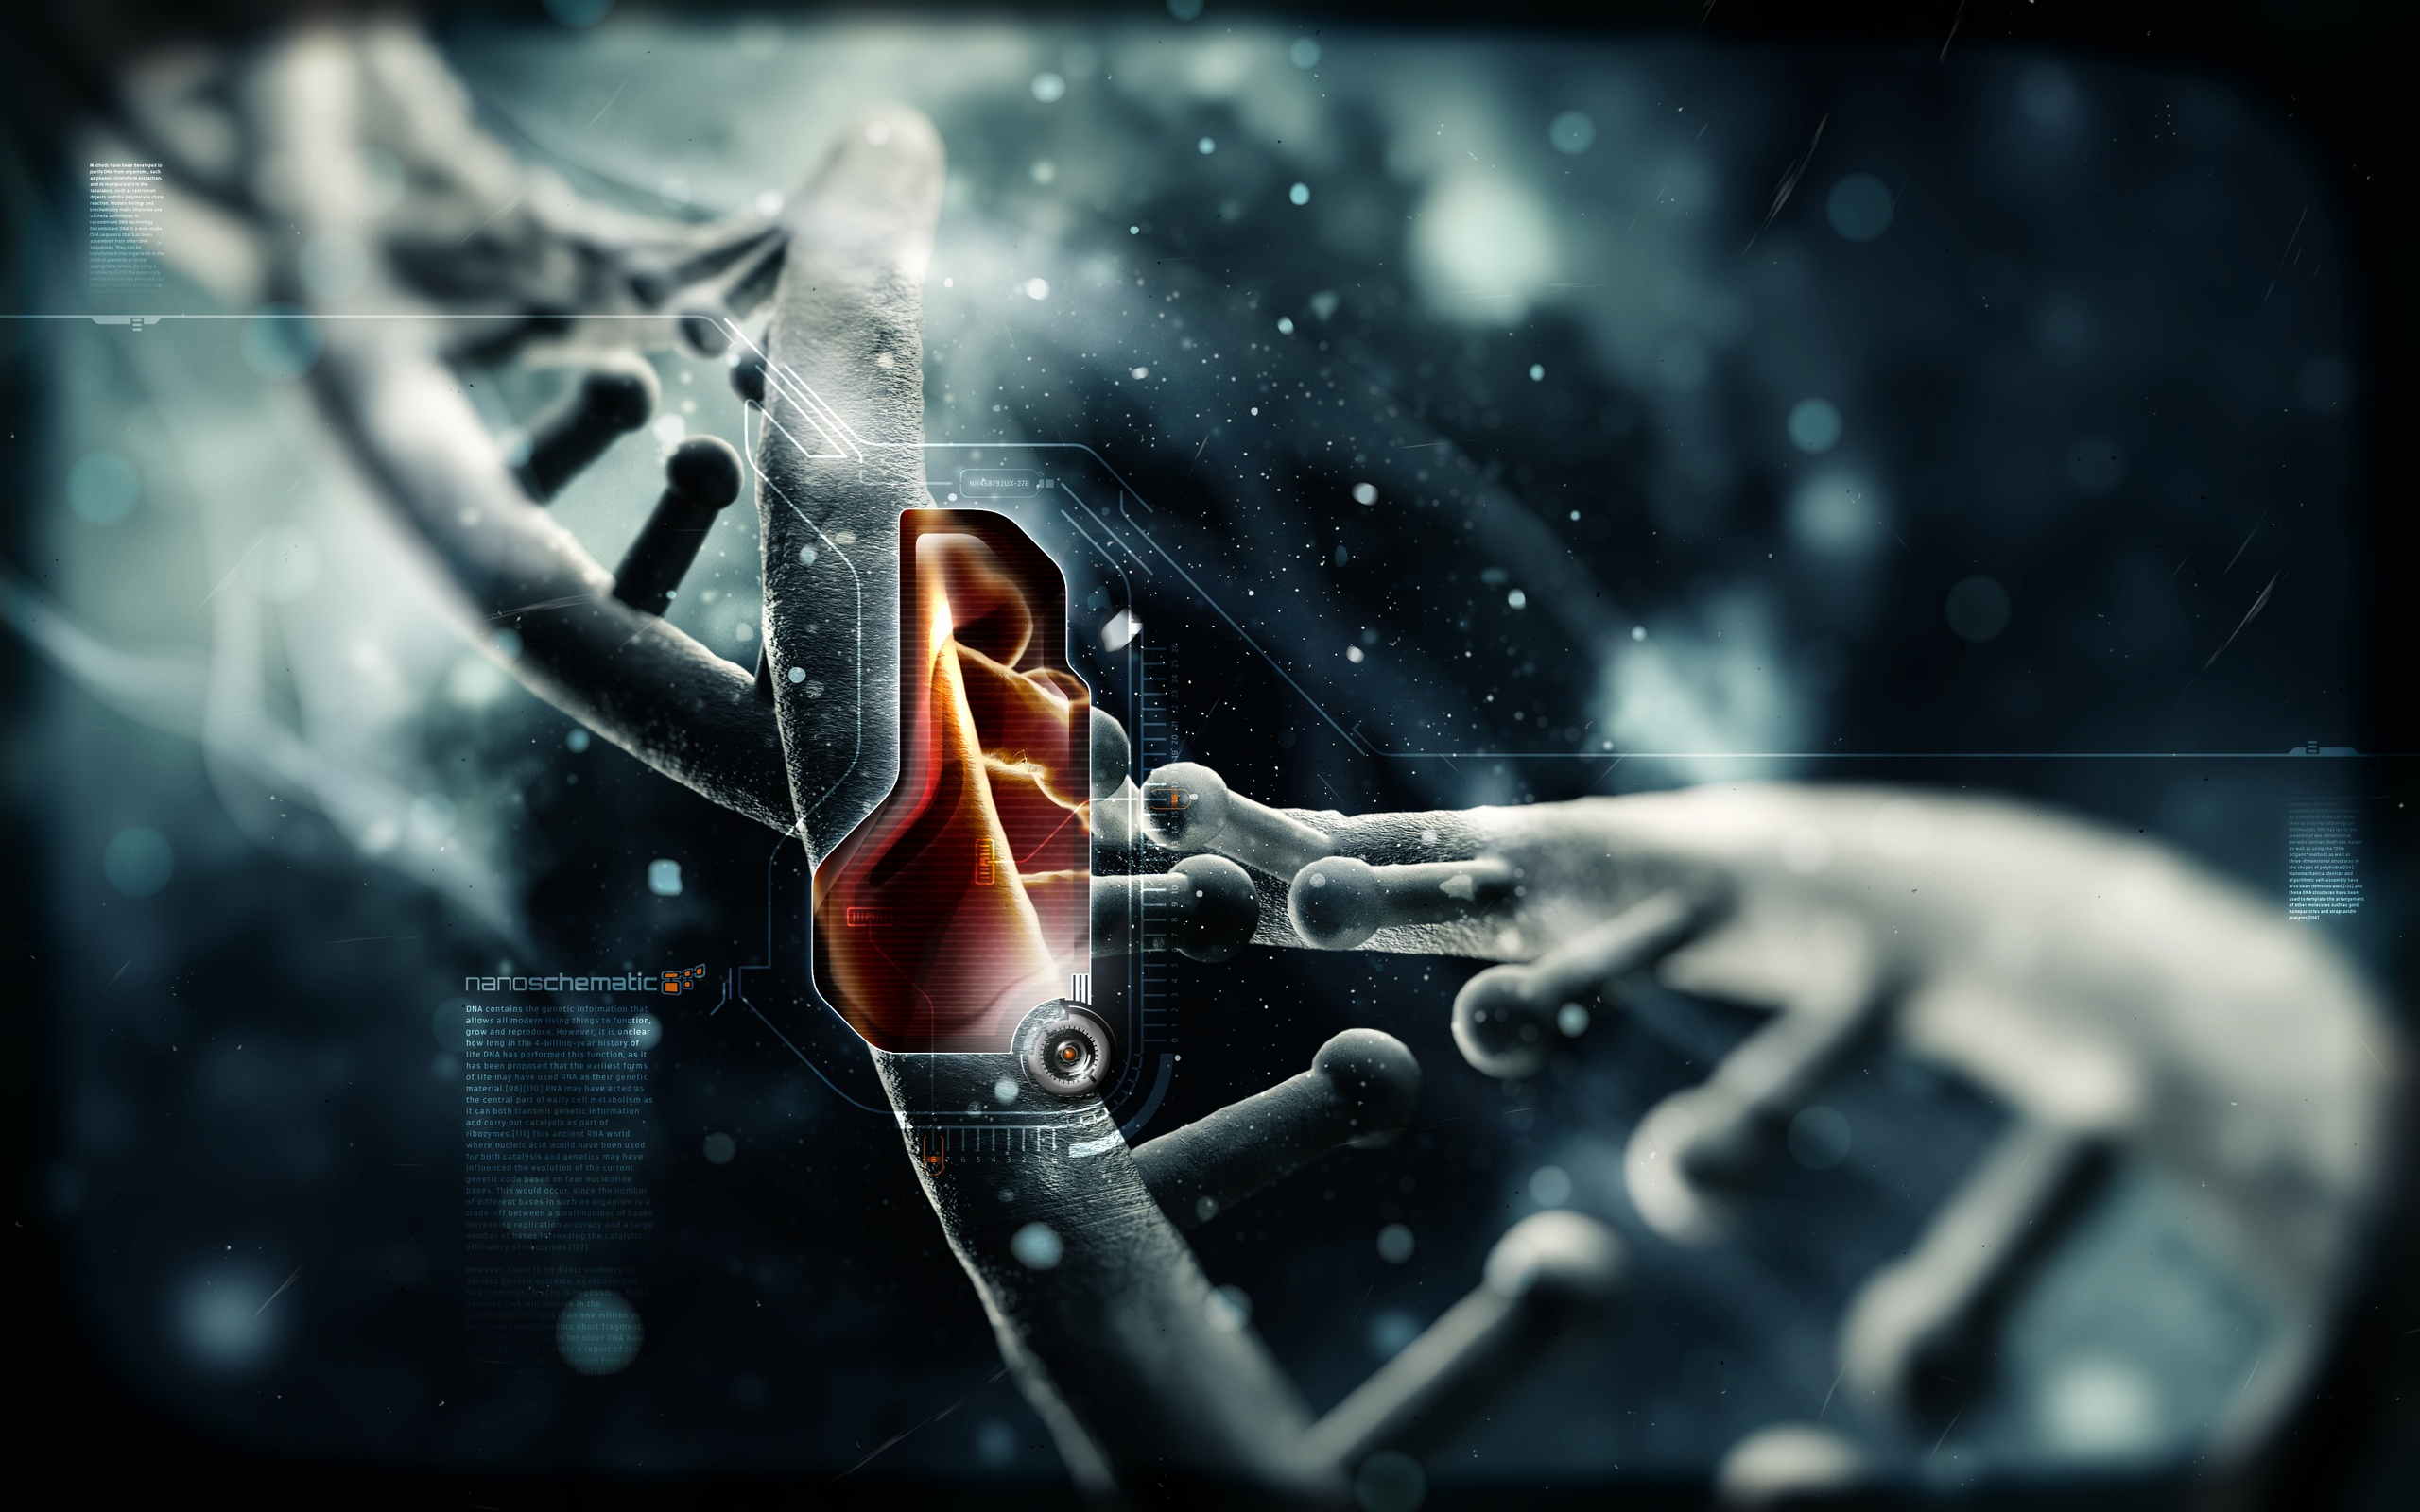 Nanoschematic Dna HD Wallpaper 2560x1600